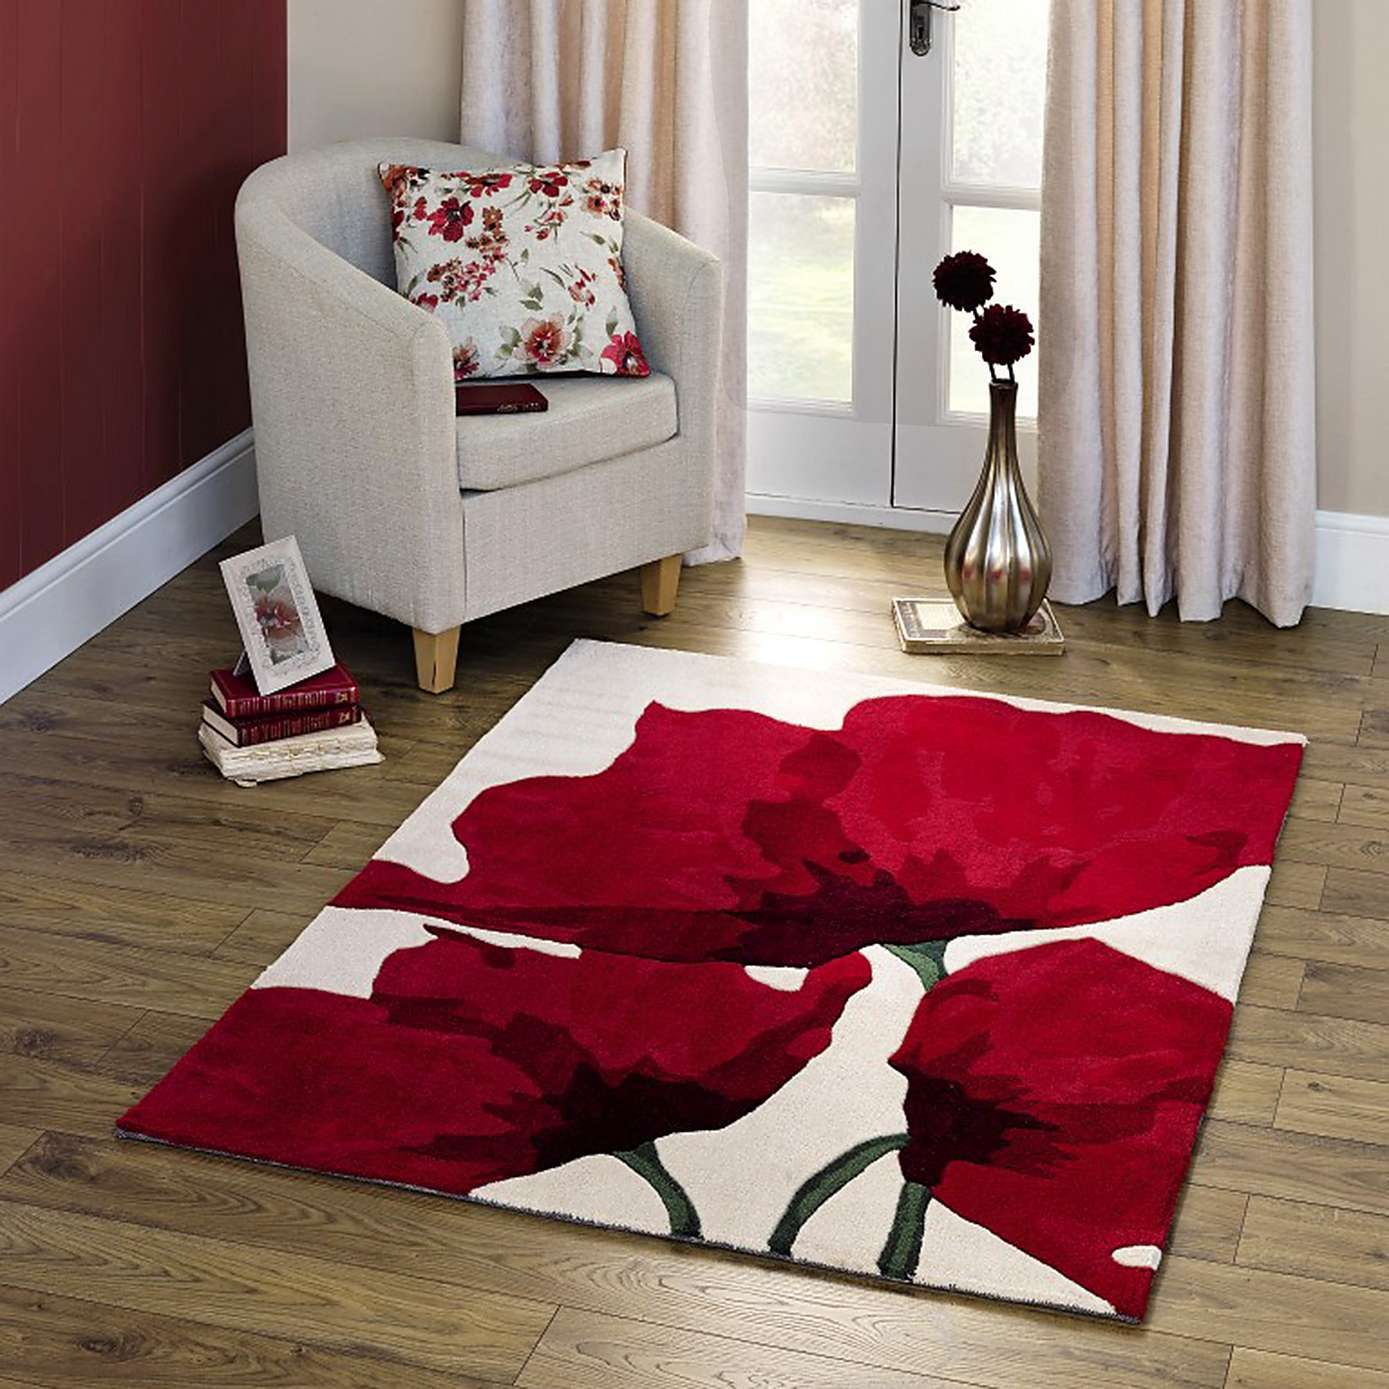 Modern Rugs Dunelm: Rugs, Large Rugs And